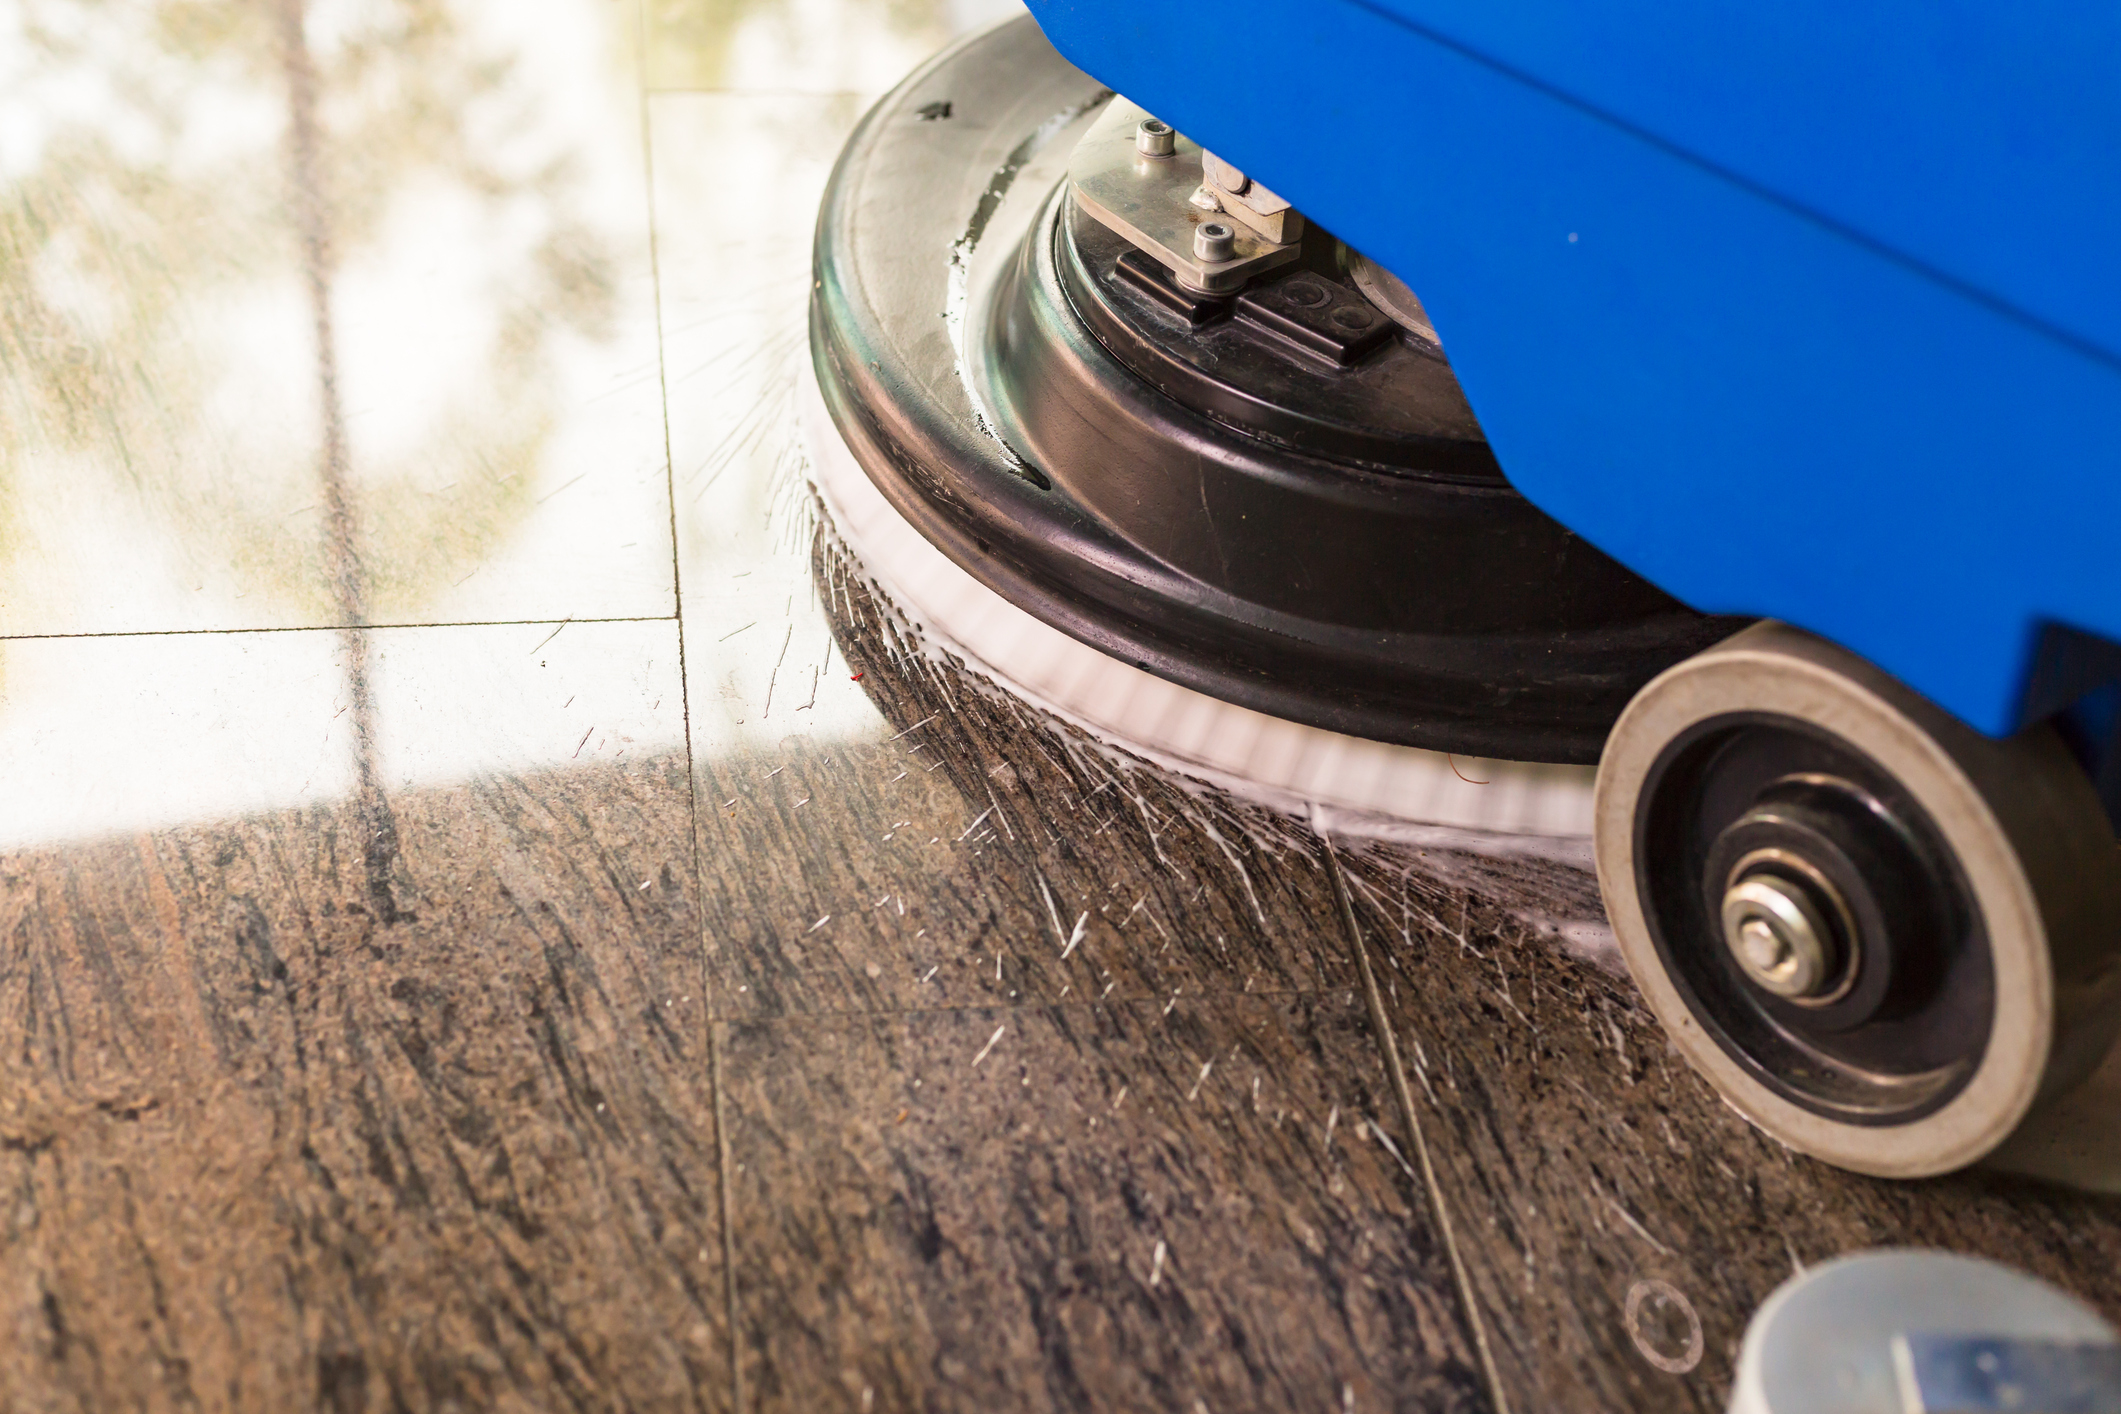 ACTIVE FLOOR CLEANING  - Our cleaning service being to service your building. floors. We pay attention to edges and any cautions. We work our process to ensure your floors are pristine and maintained.